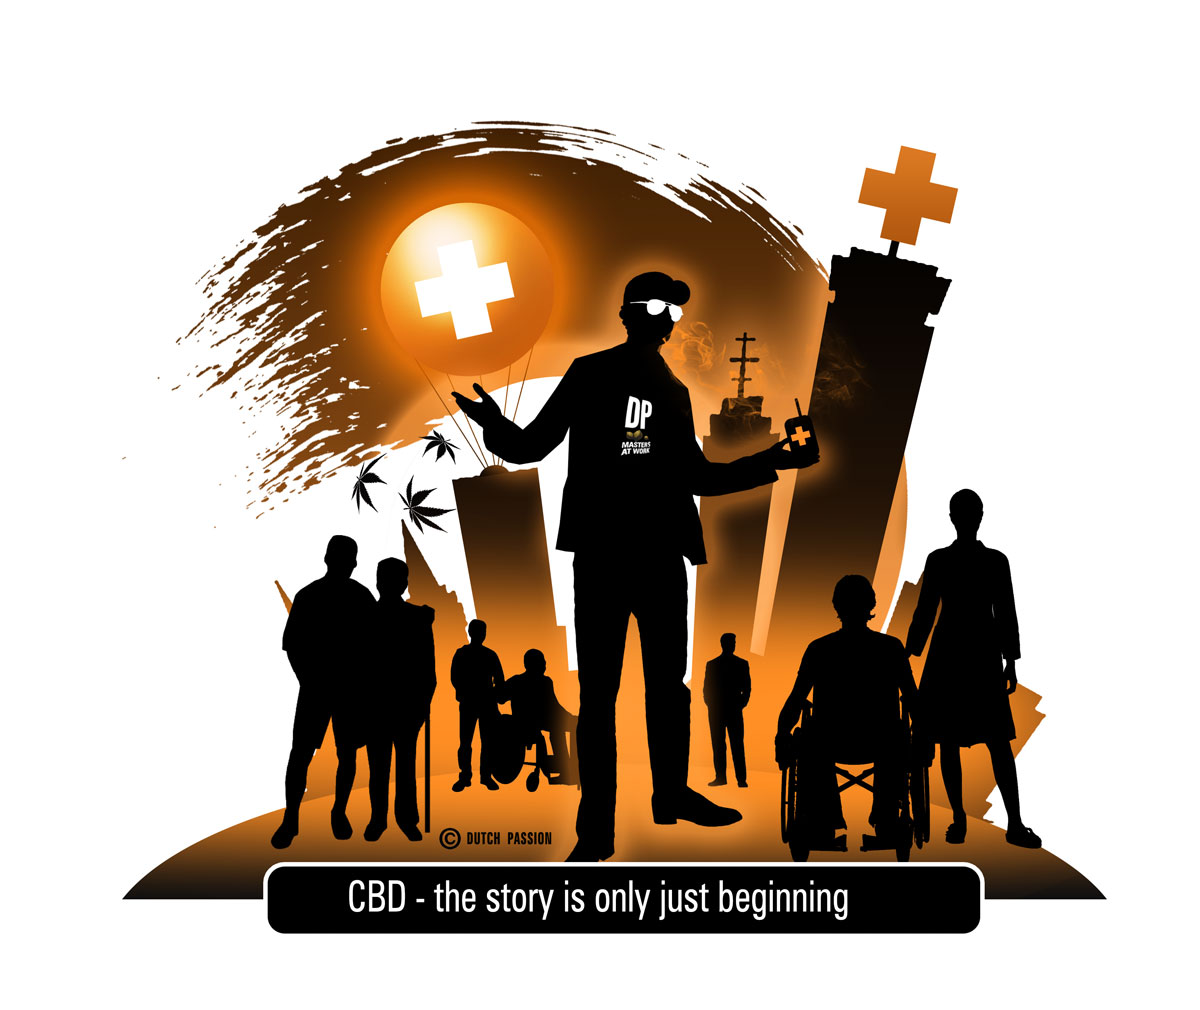 CBD, the story is just beginning